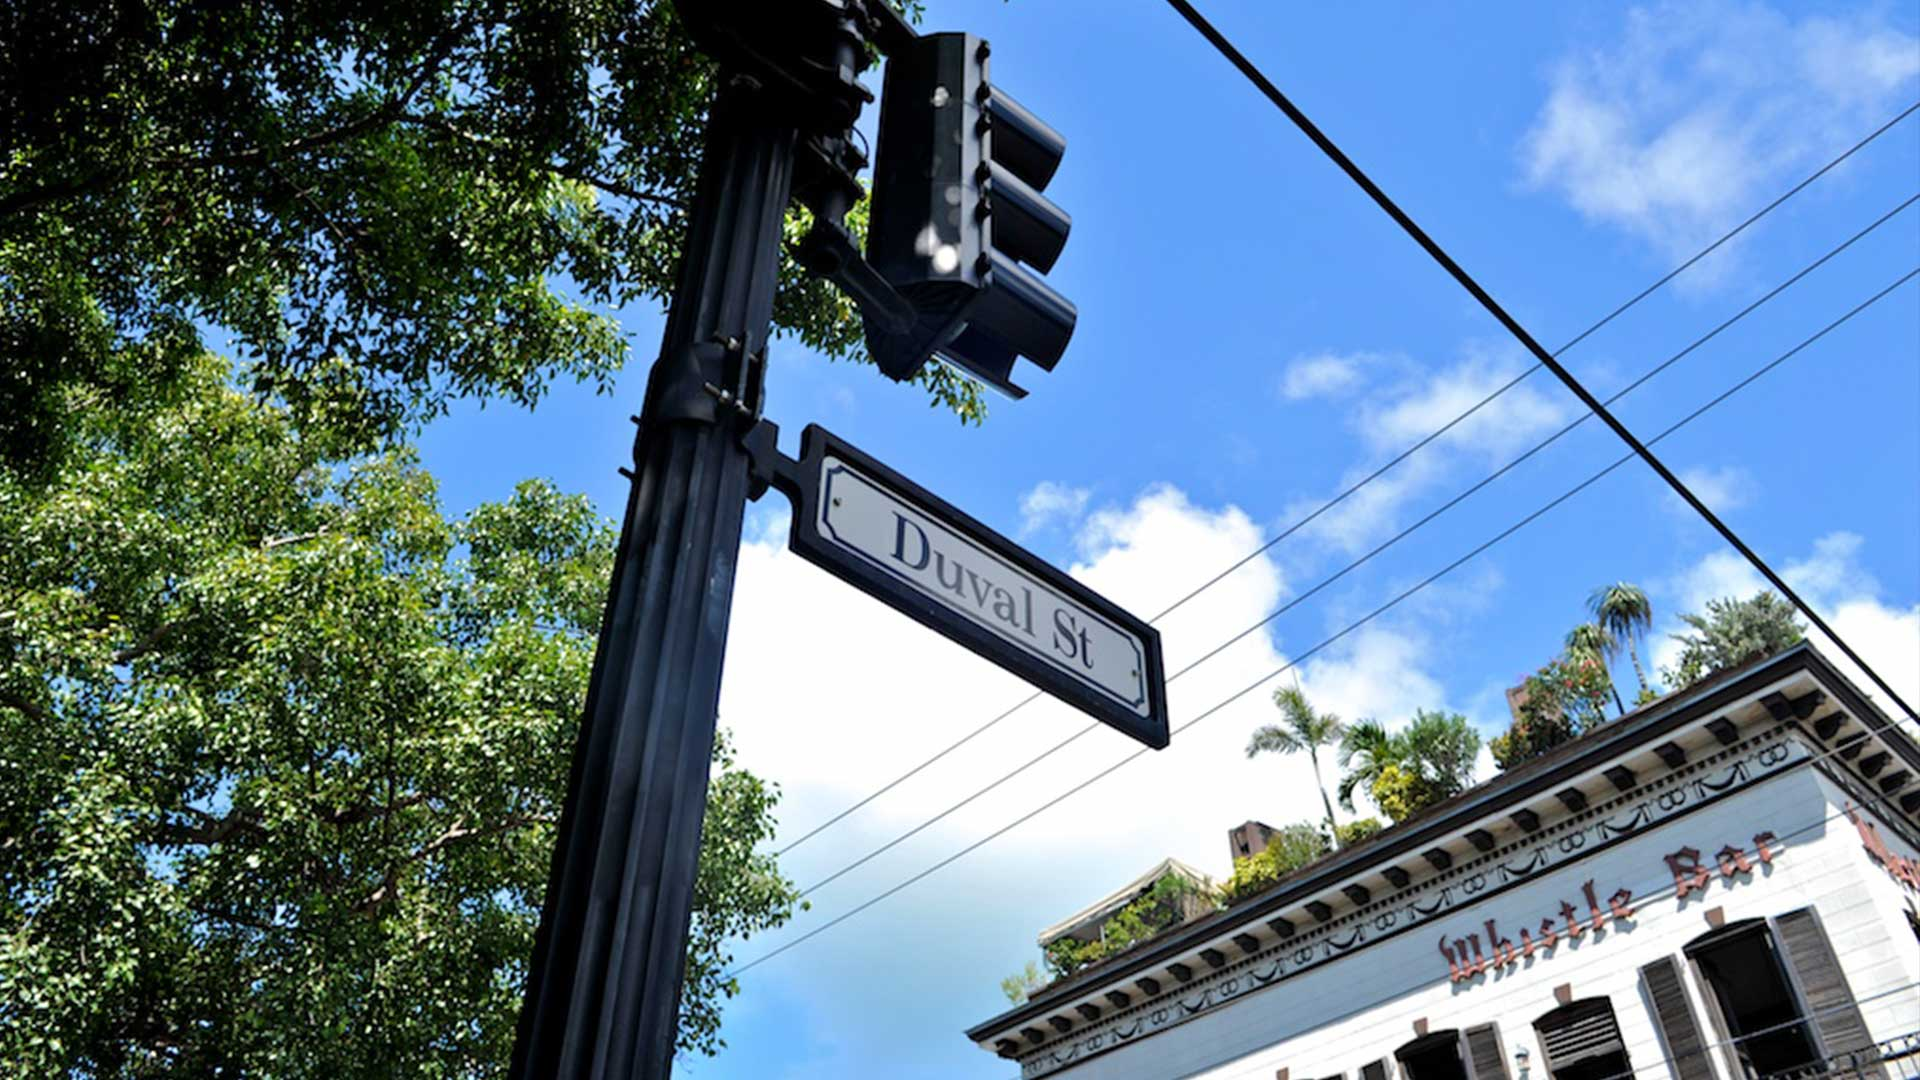 key west duval street recognized for party and bars